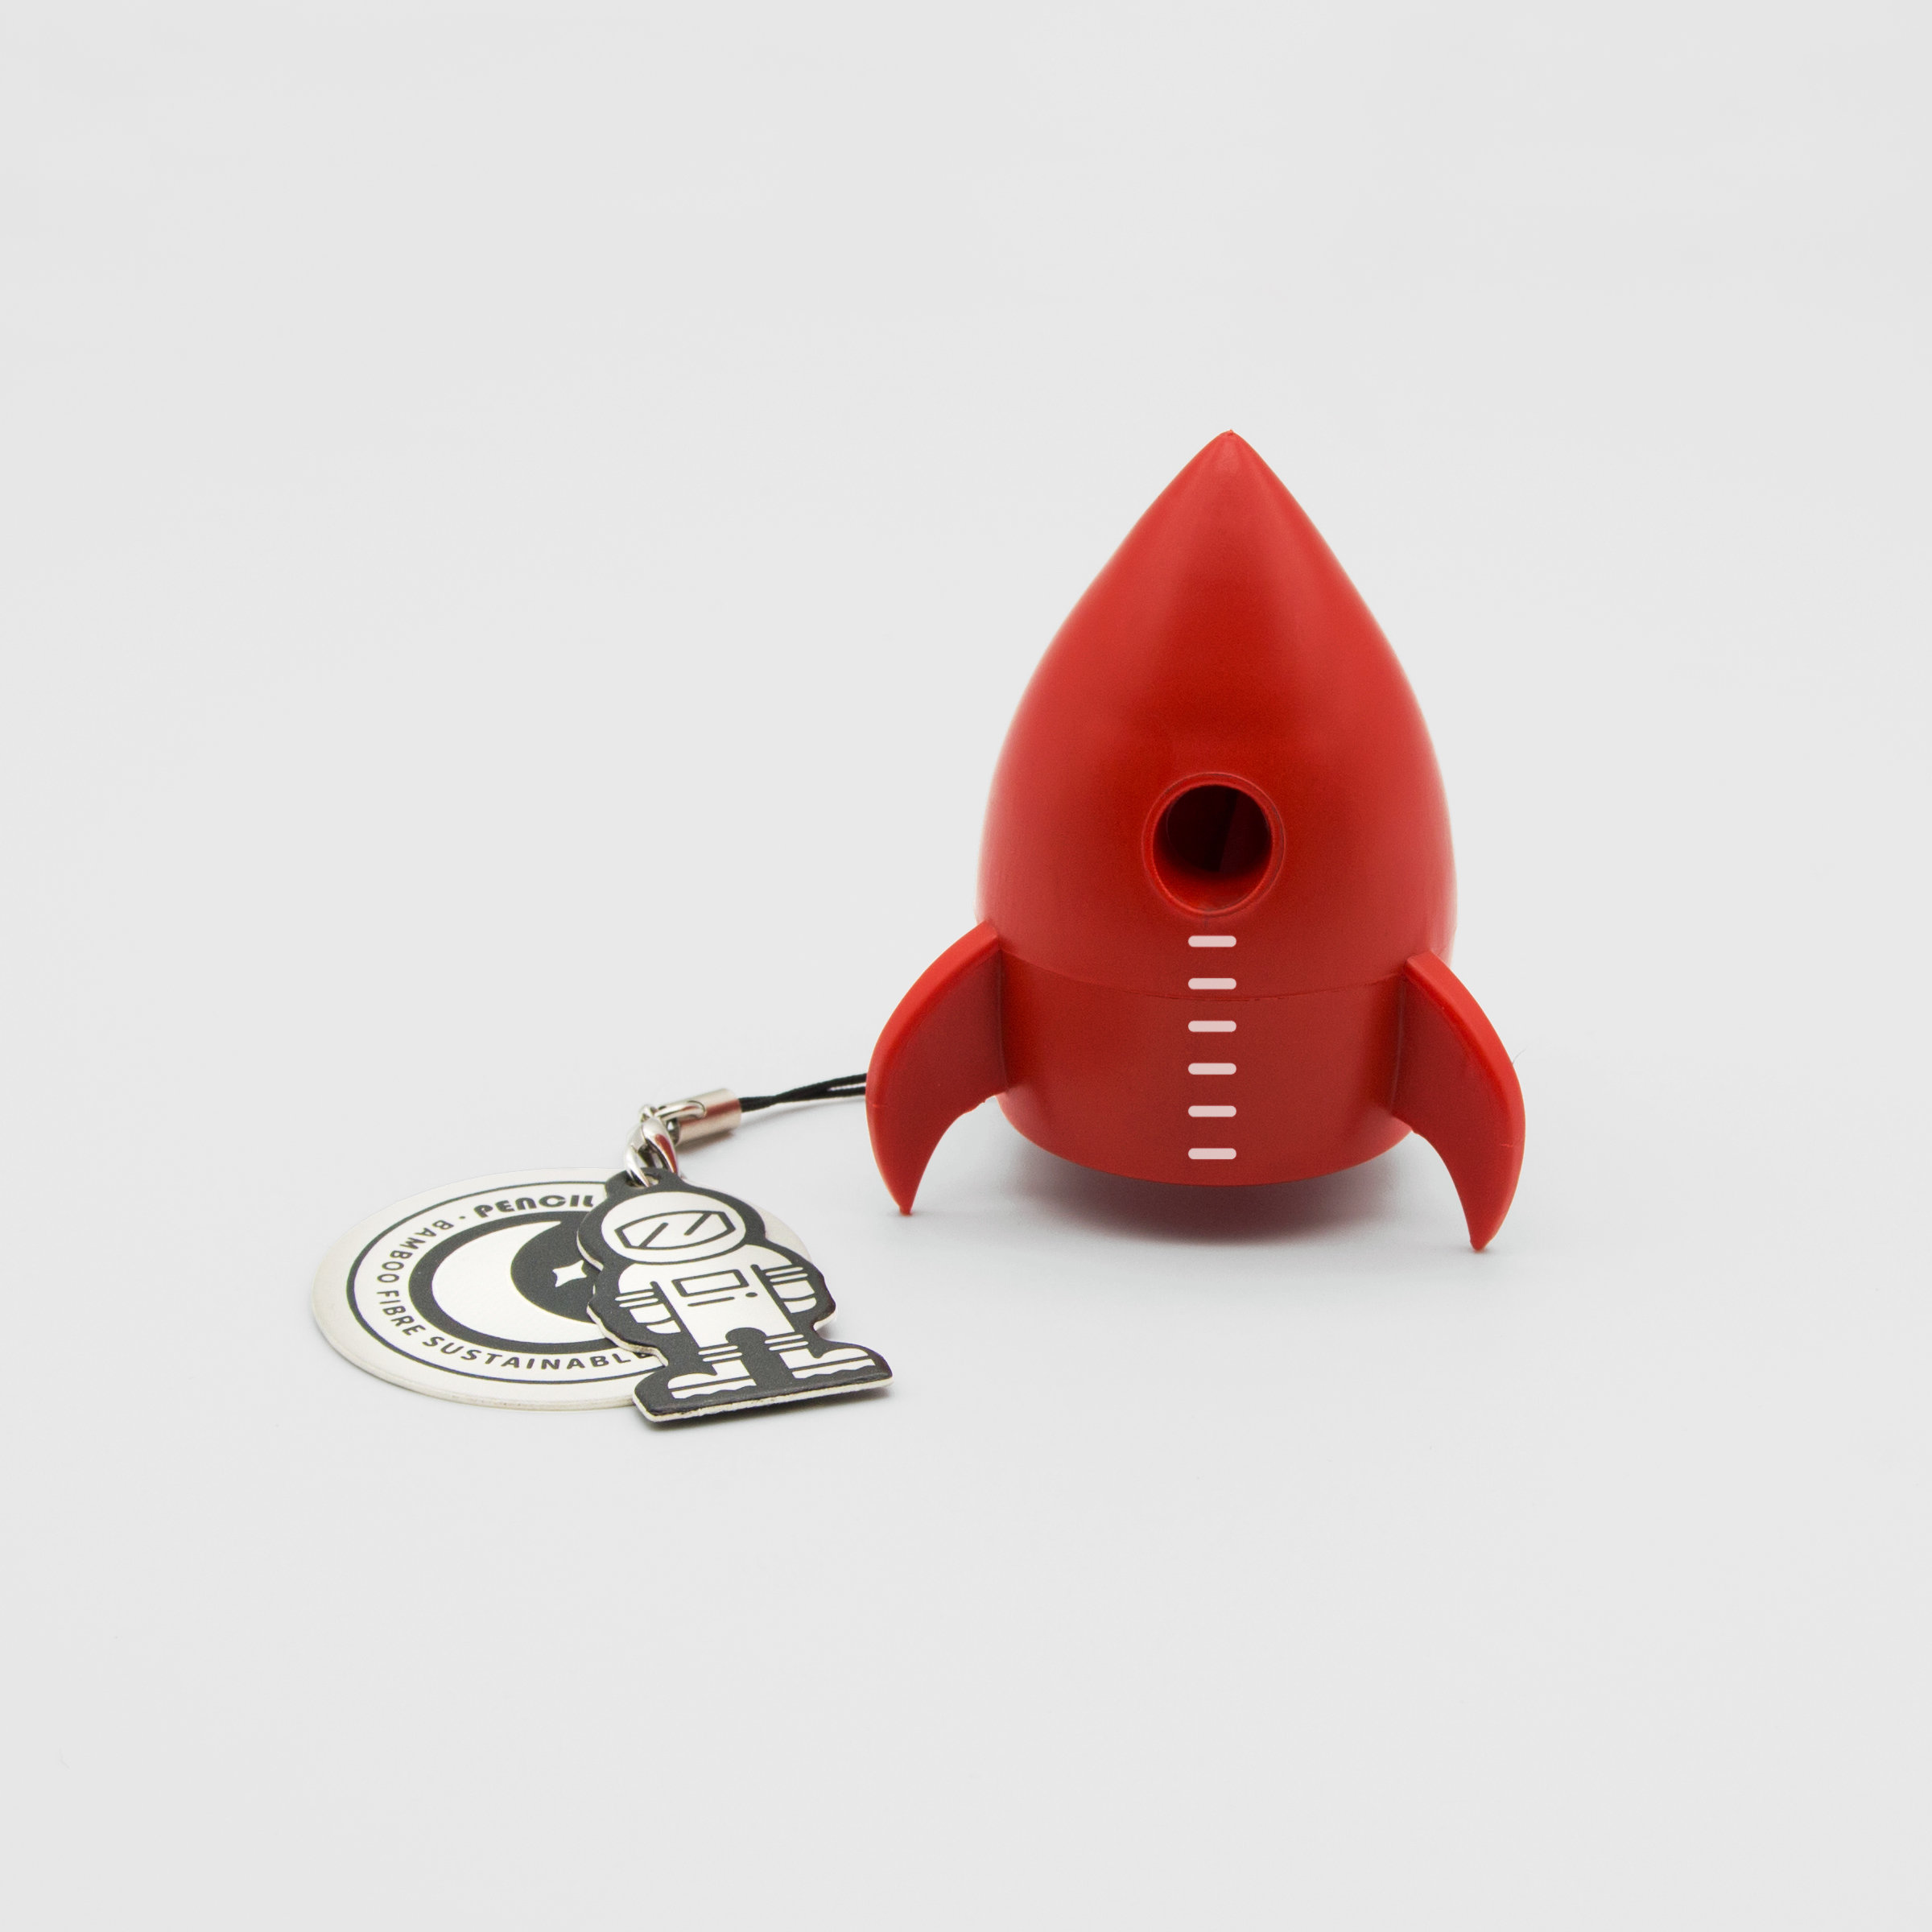 Red Rocket Pencil Sharpener